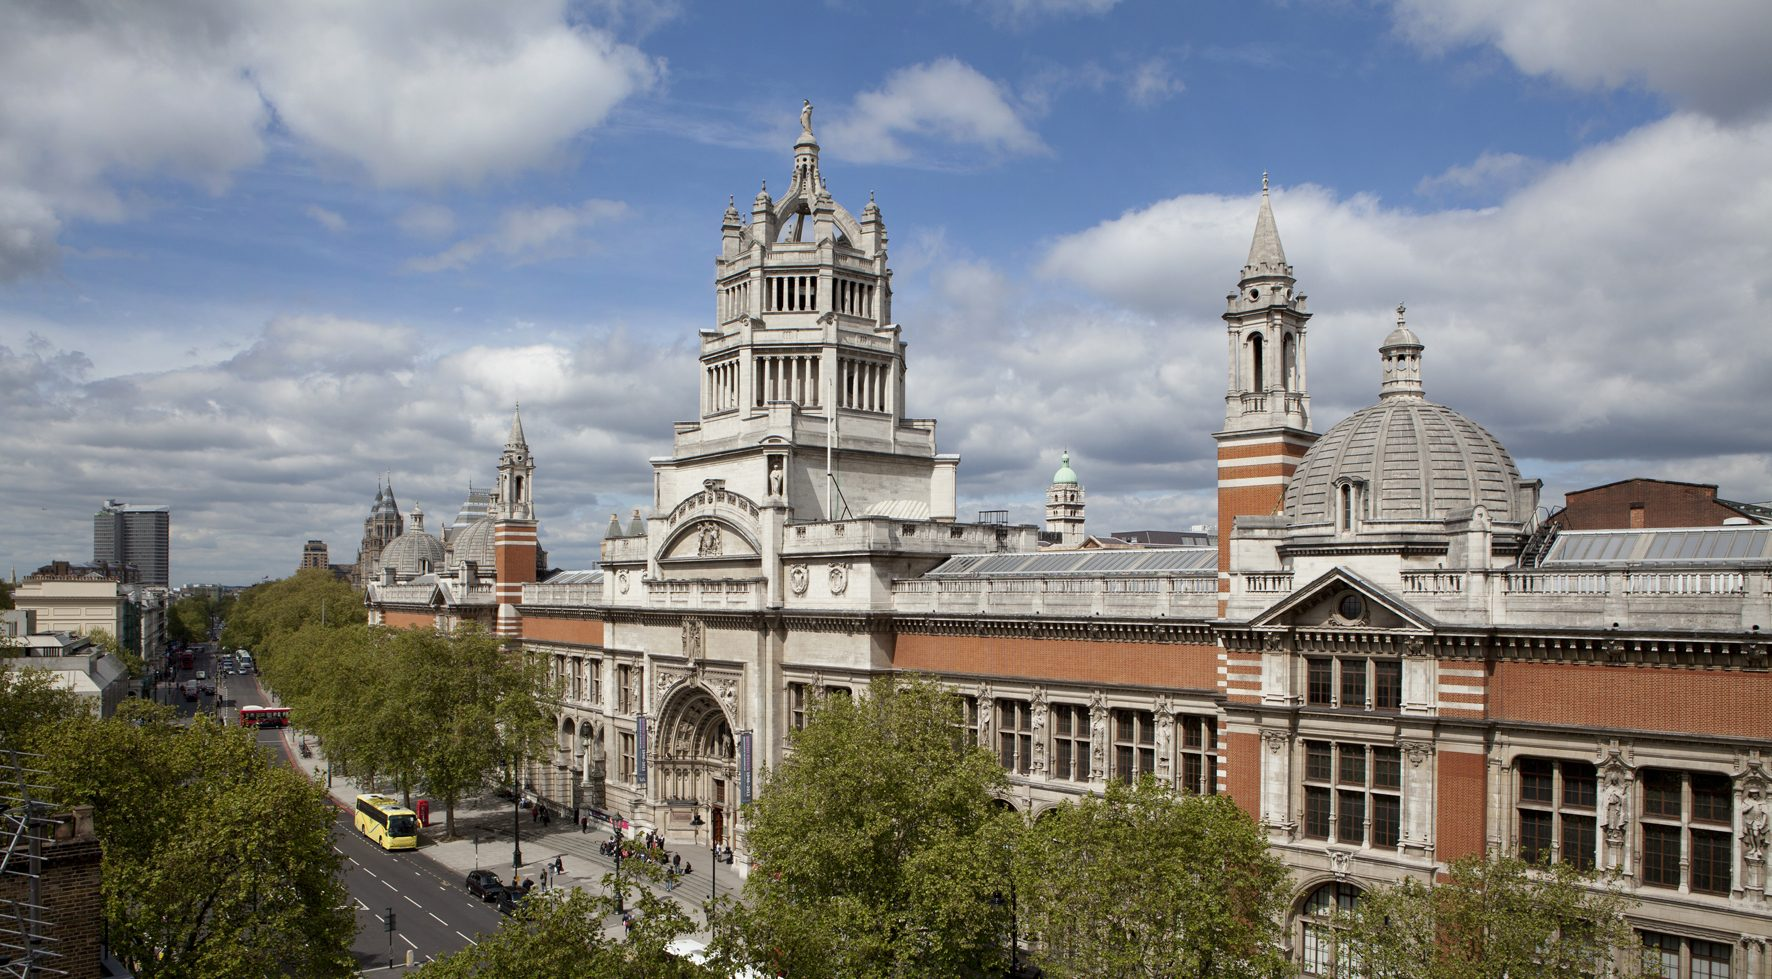 A Brief History of the Victoria and Albert Museum